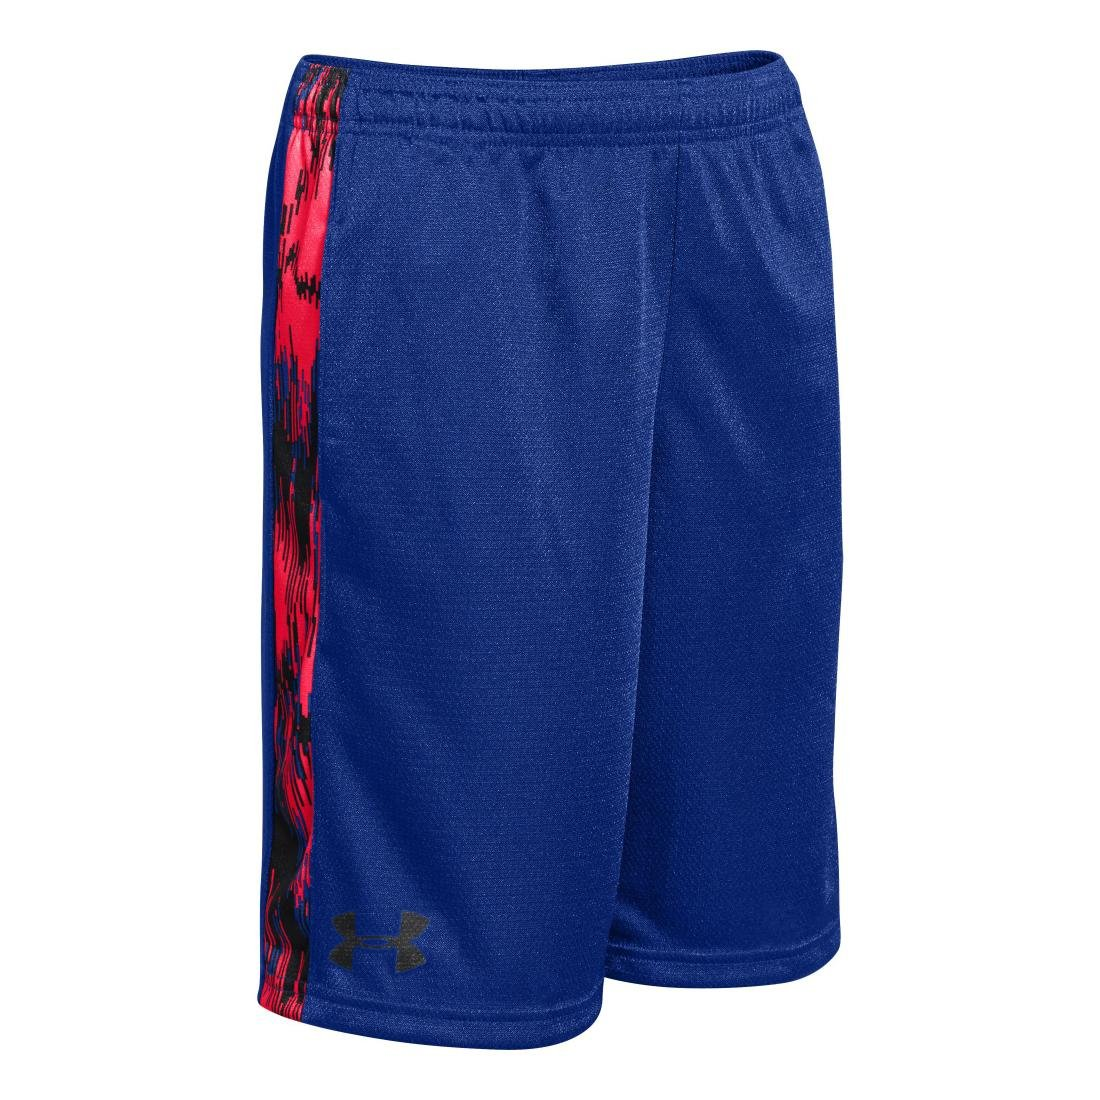 Under Armour Boys 9'' Ultimate Short Royal/Royal/Black Size X-Large